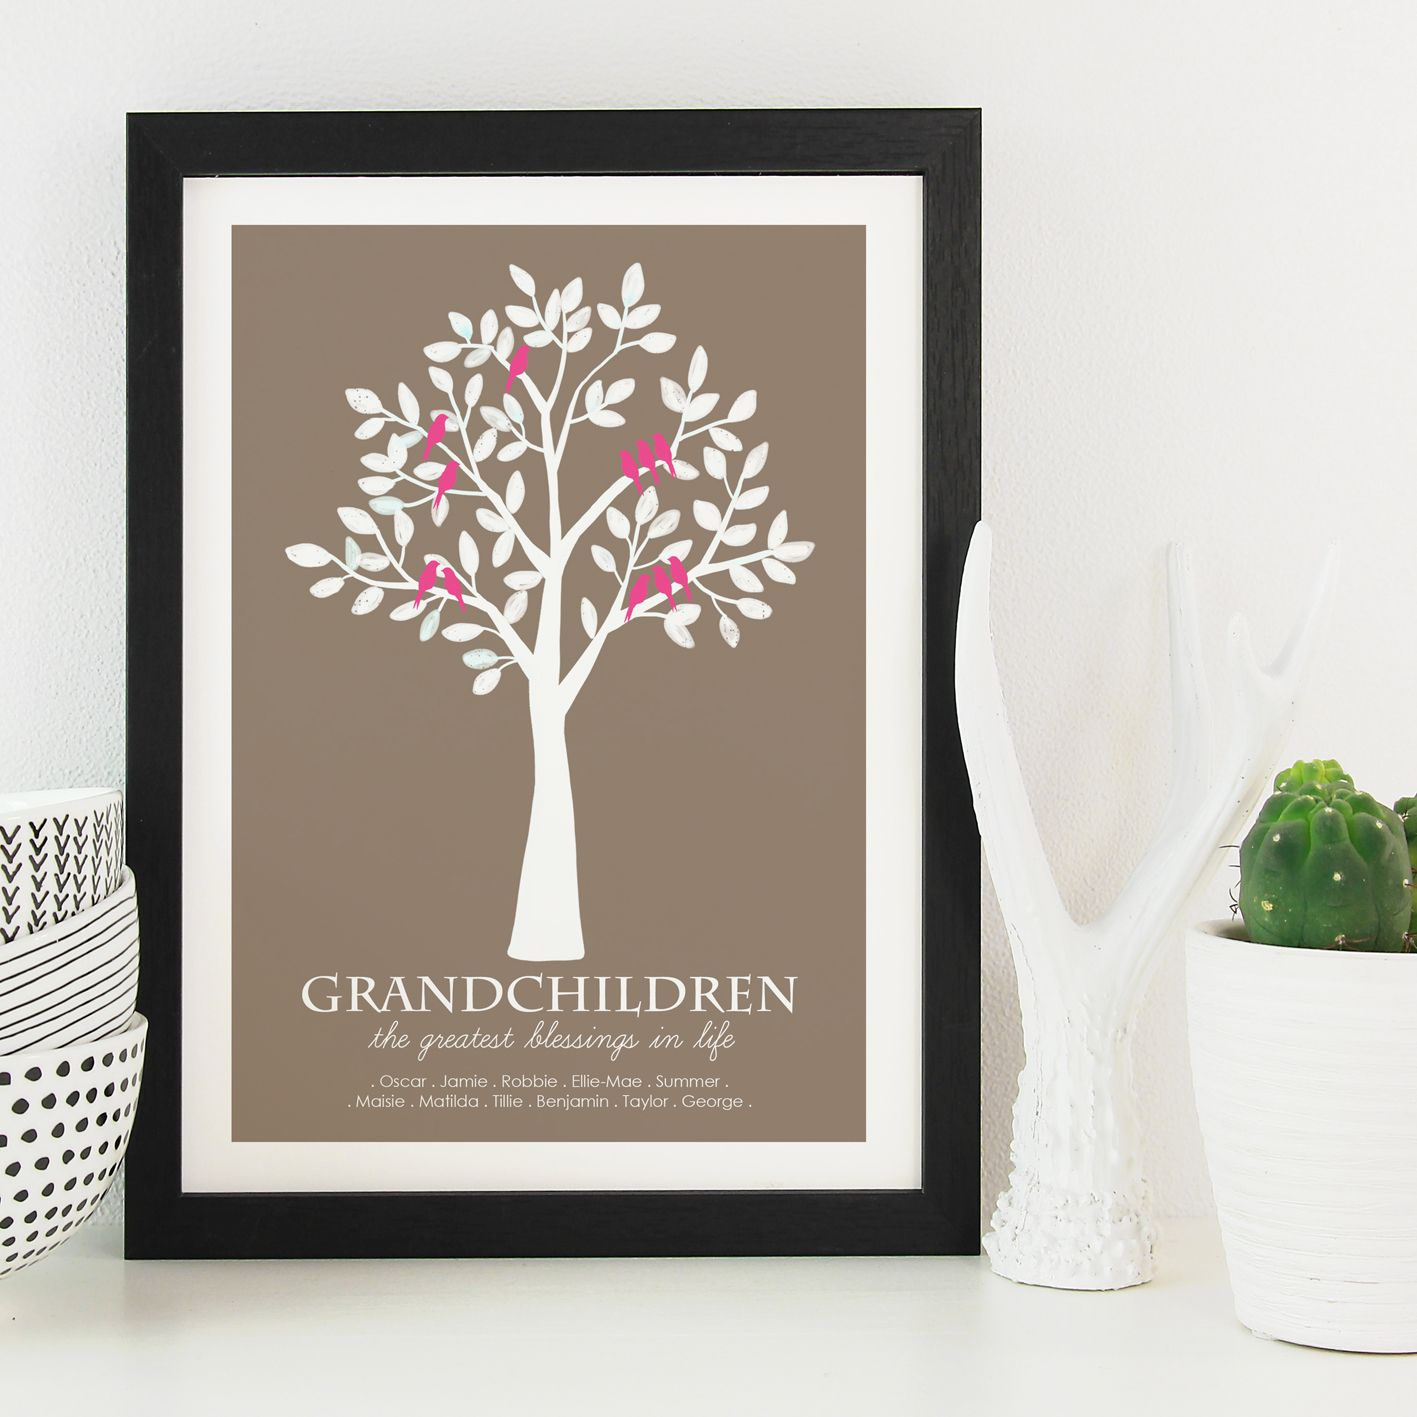 Grandparent Grandchildren Family Tree print